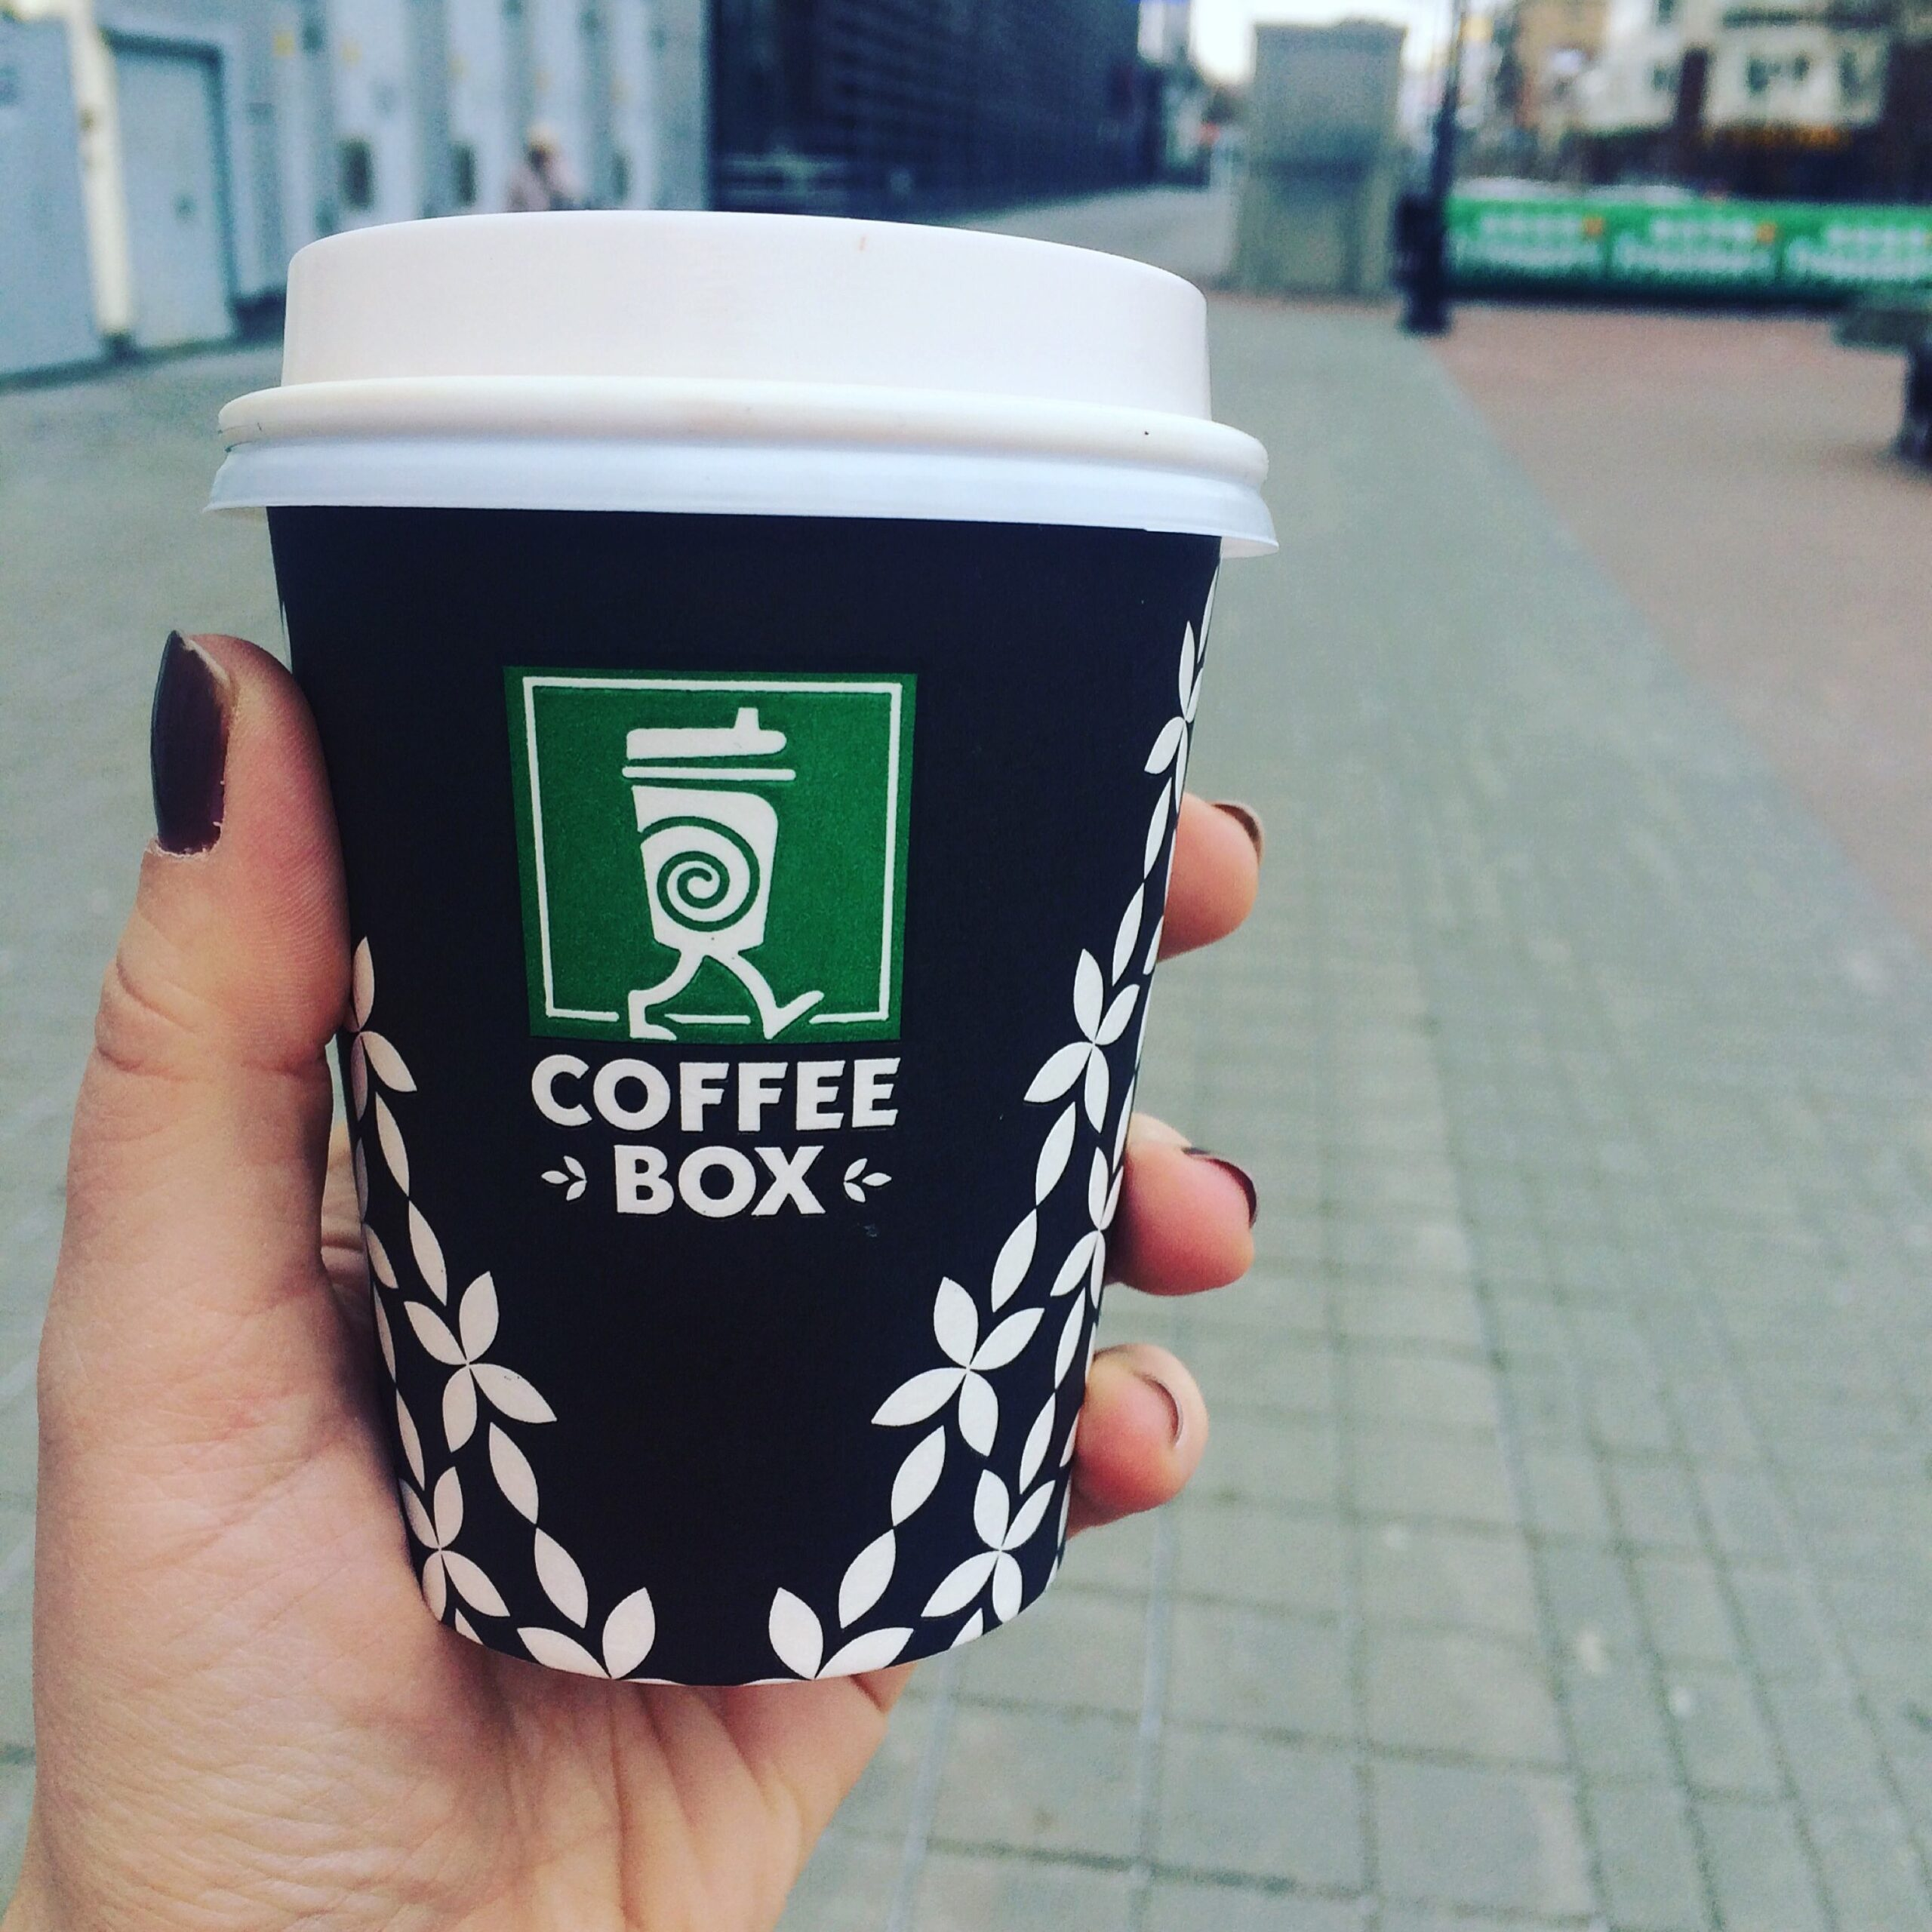 The role of Packaging in Coffee Business Branding